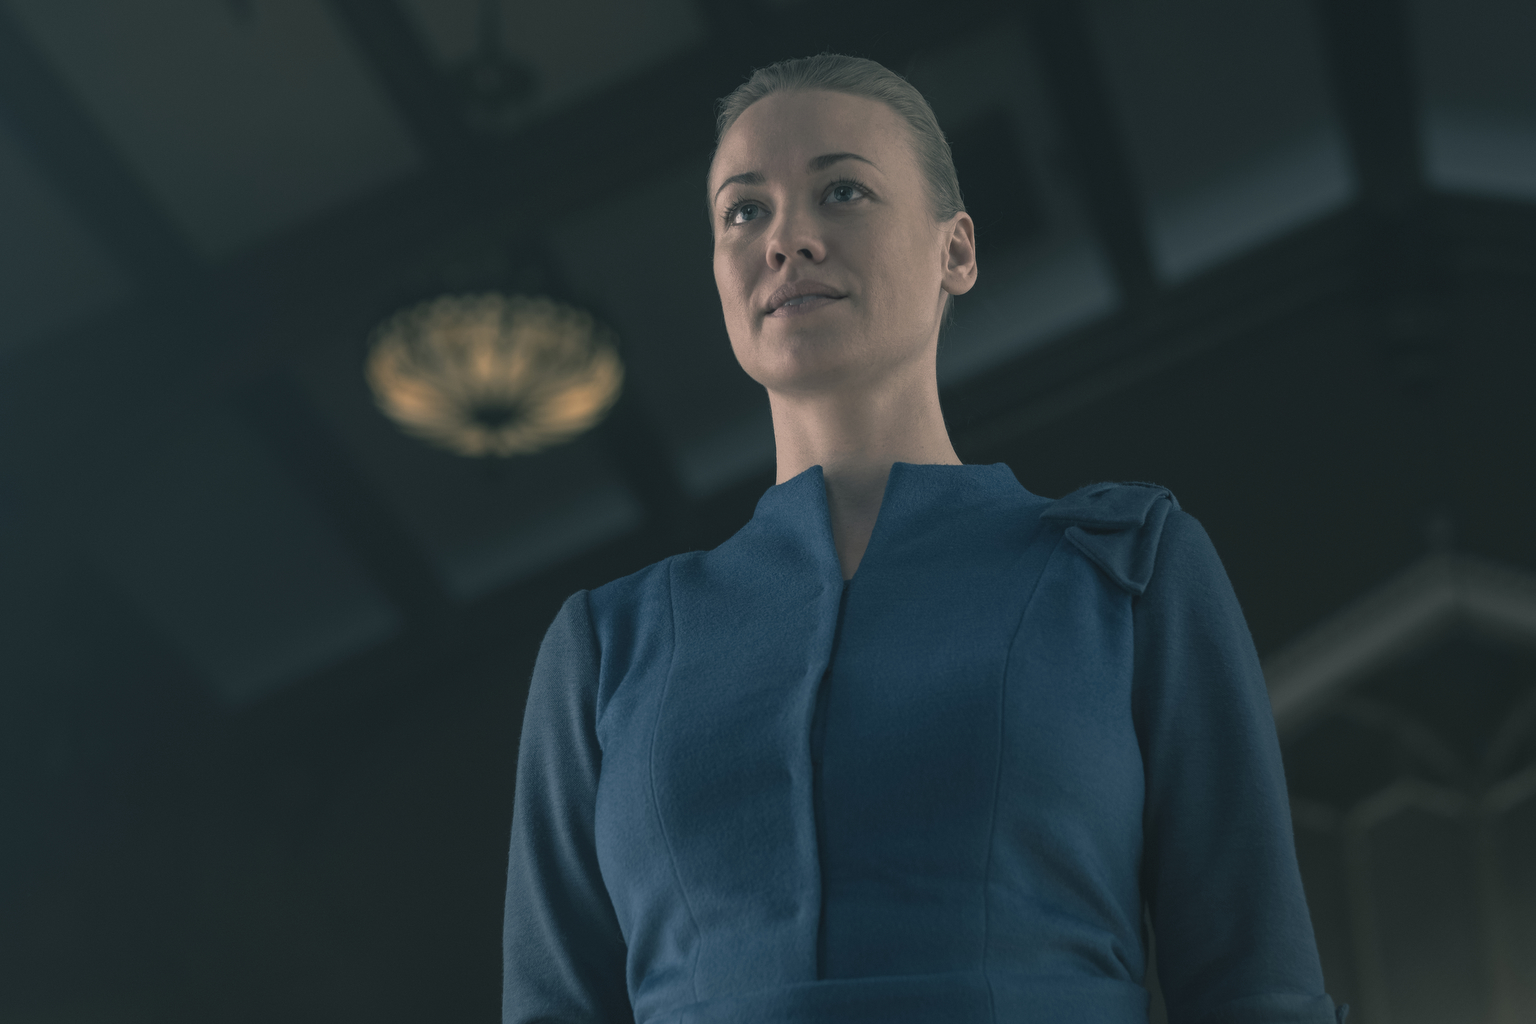 "THE HANDMAID'S TALE -- ""The Word"" -- Episode 213 -- Serena and the other Wives strive to make change. Emily learns more about her new Commander. Offred faces a difficult decision. Serena Joy (Yvonne Strahovski), shown. (Photo by: George Kraychyk/Hulu)"